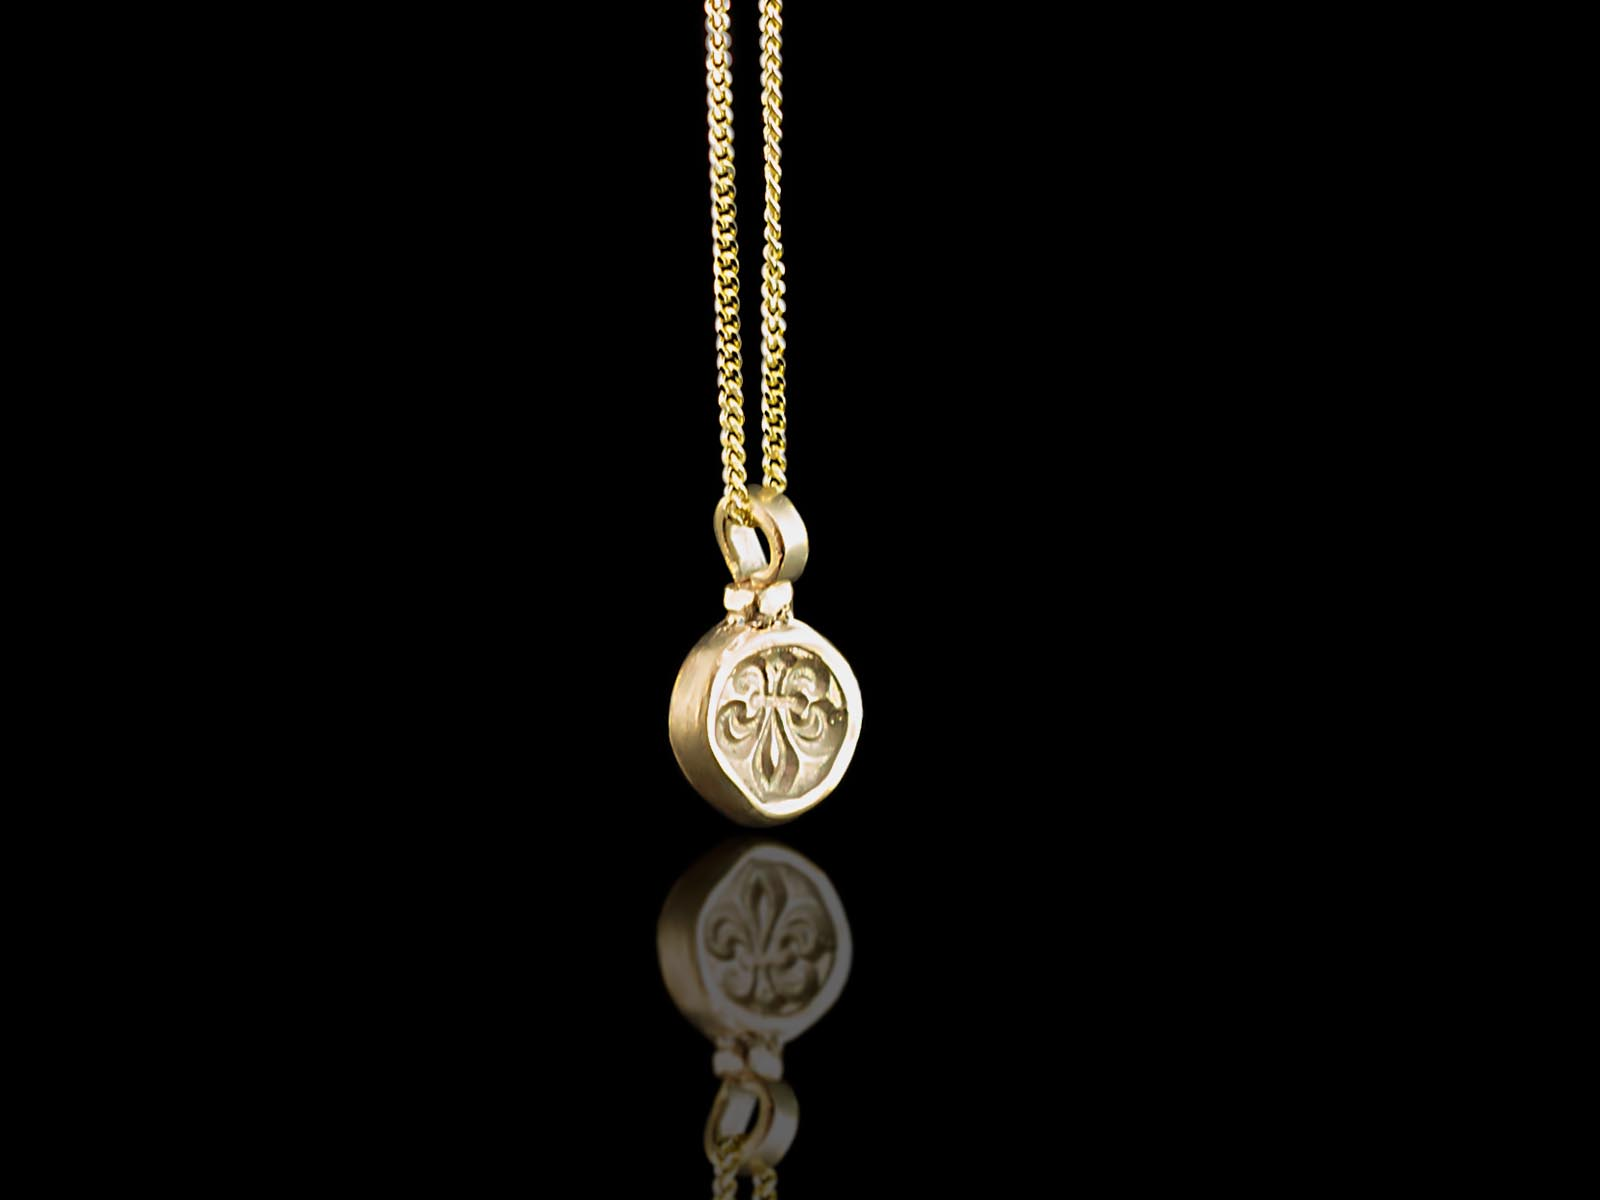 Fleur De Lis Solid 9ct Gold Necklace With A Hidden